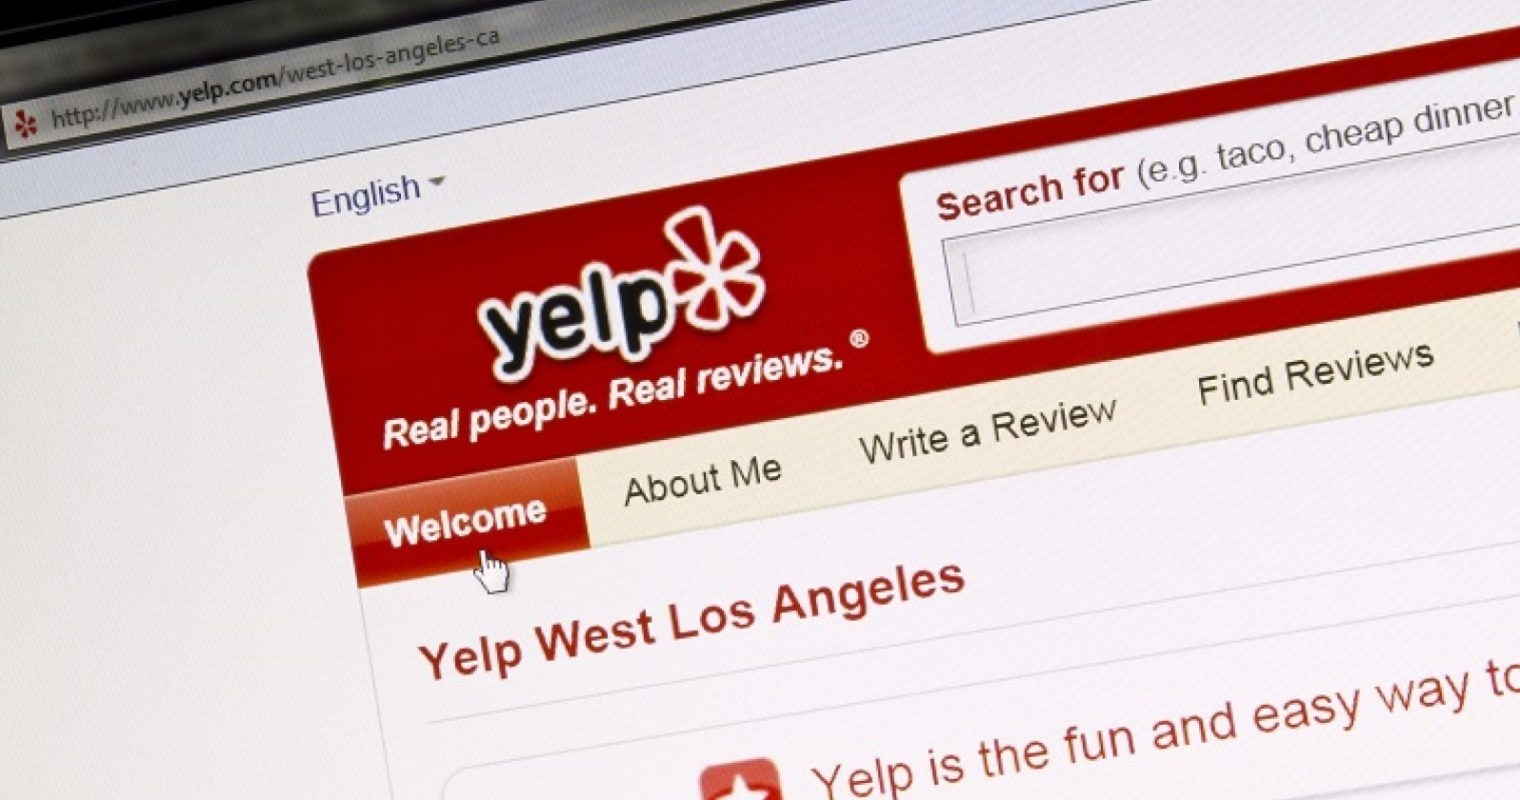 Yelp SEO: How to Optimize Your Listings & Rank Higher